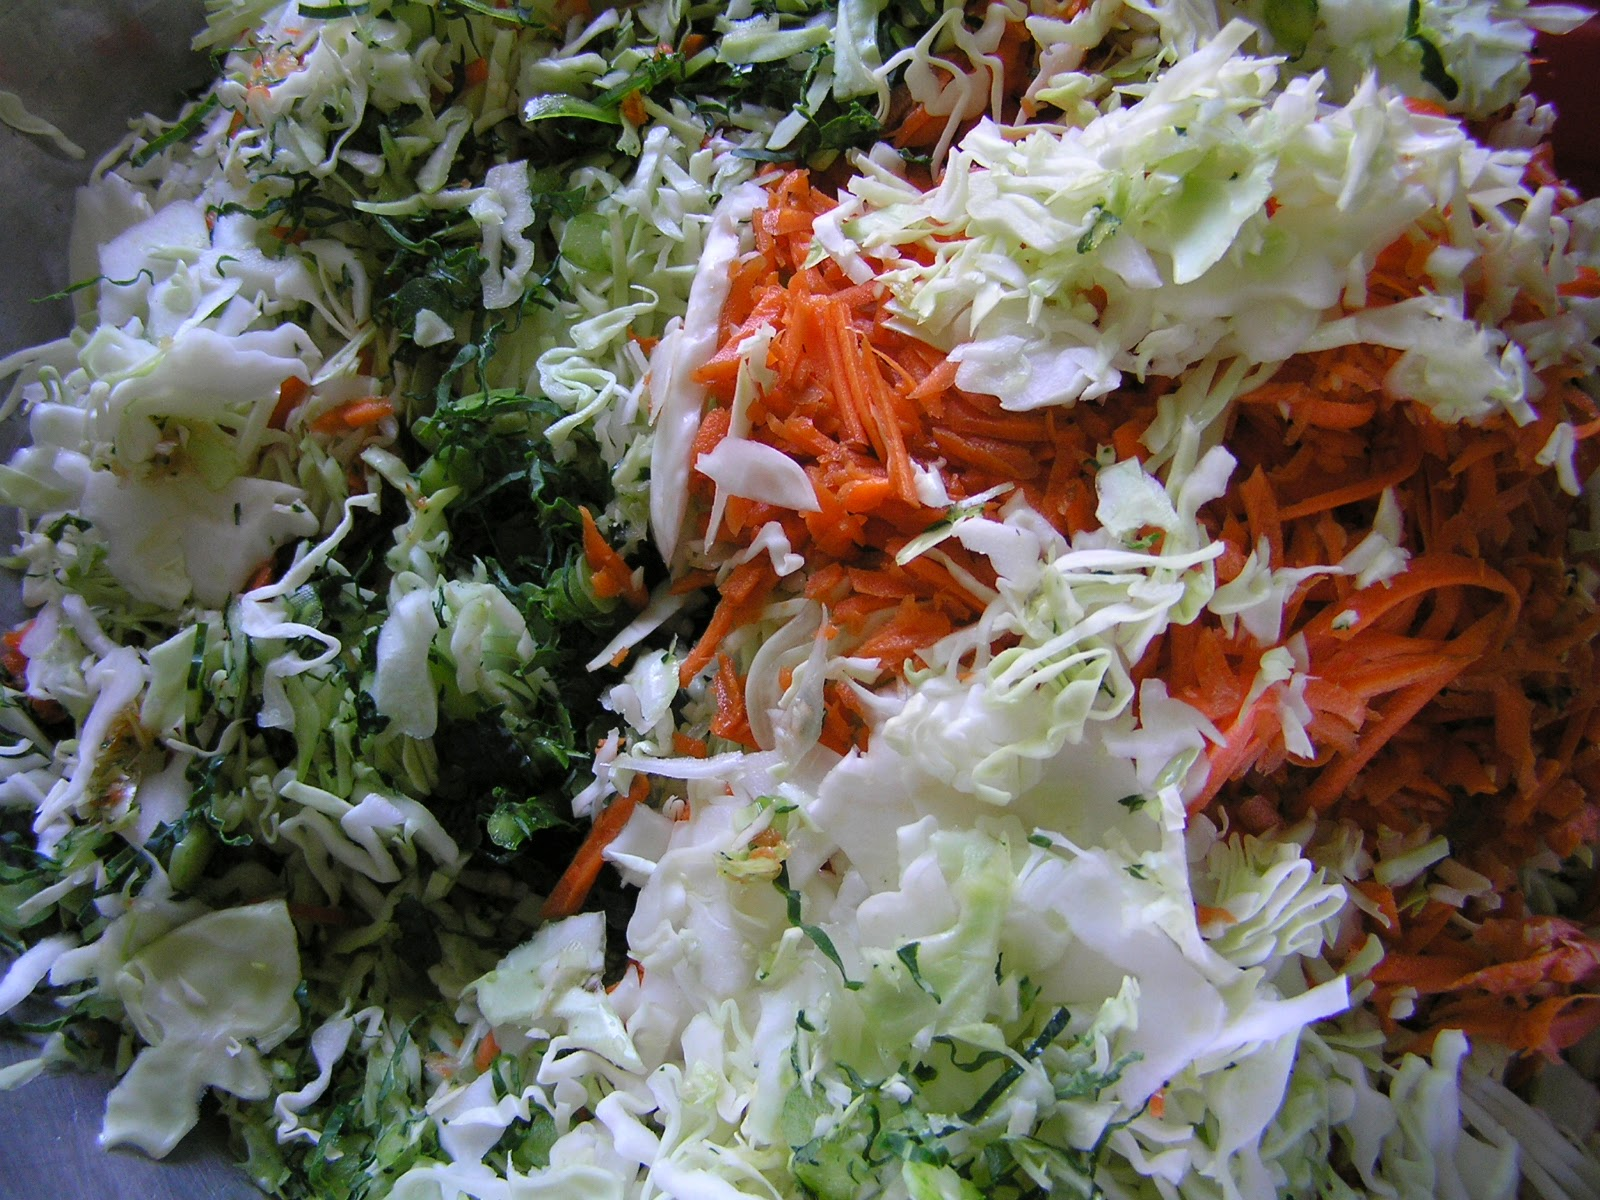 shredded vegetables for sauerkraut